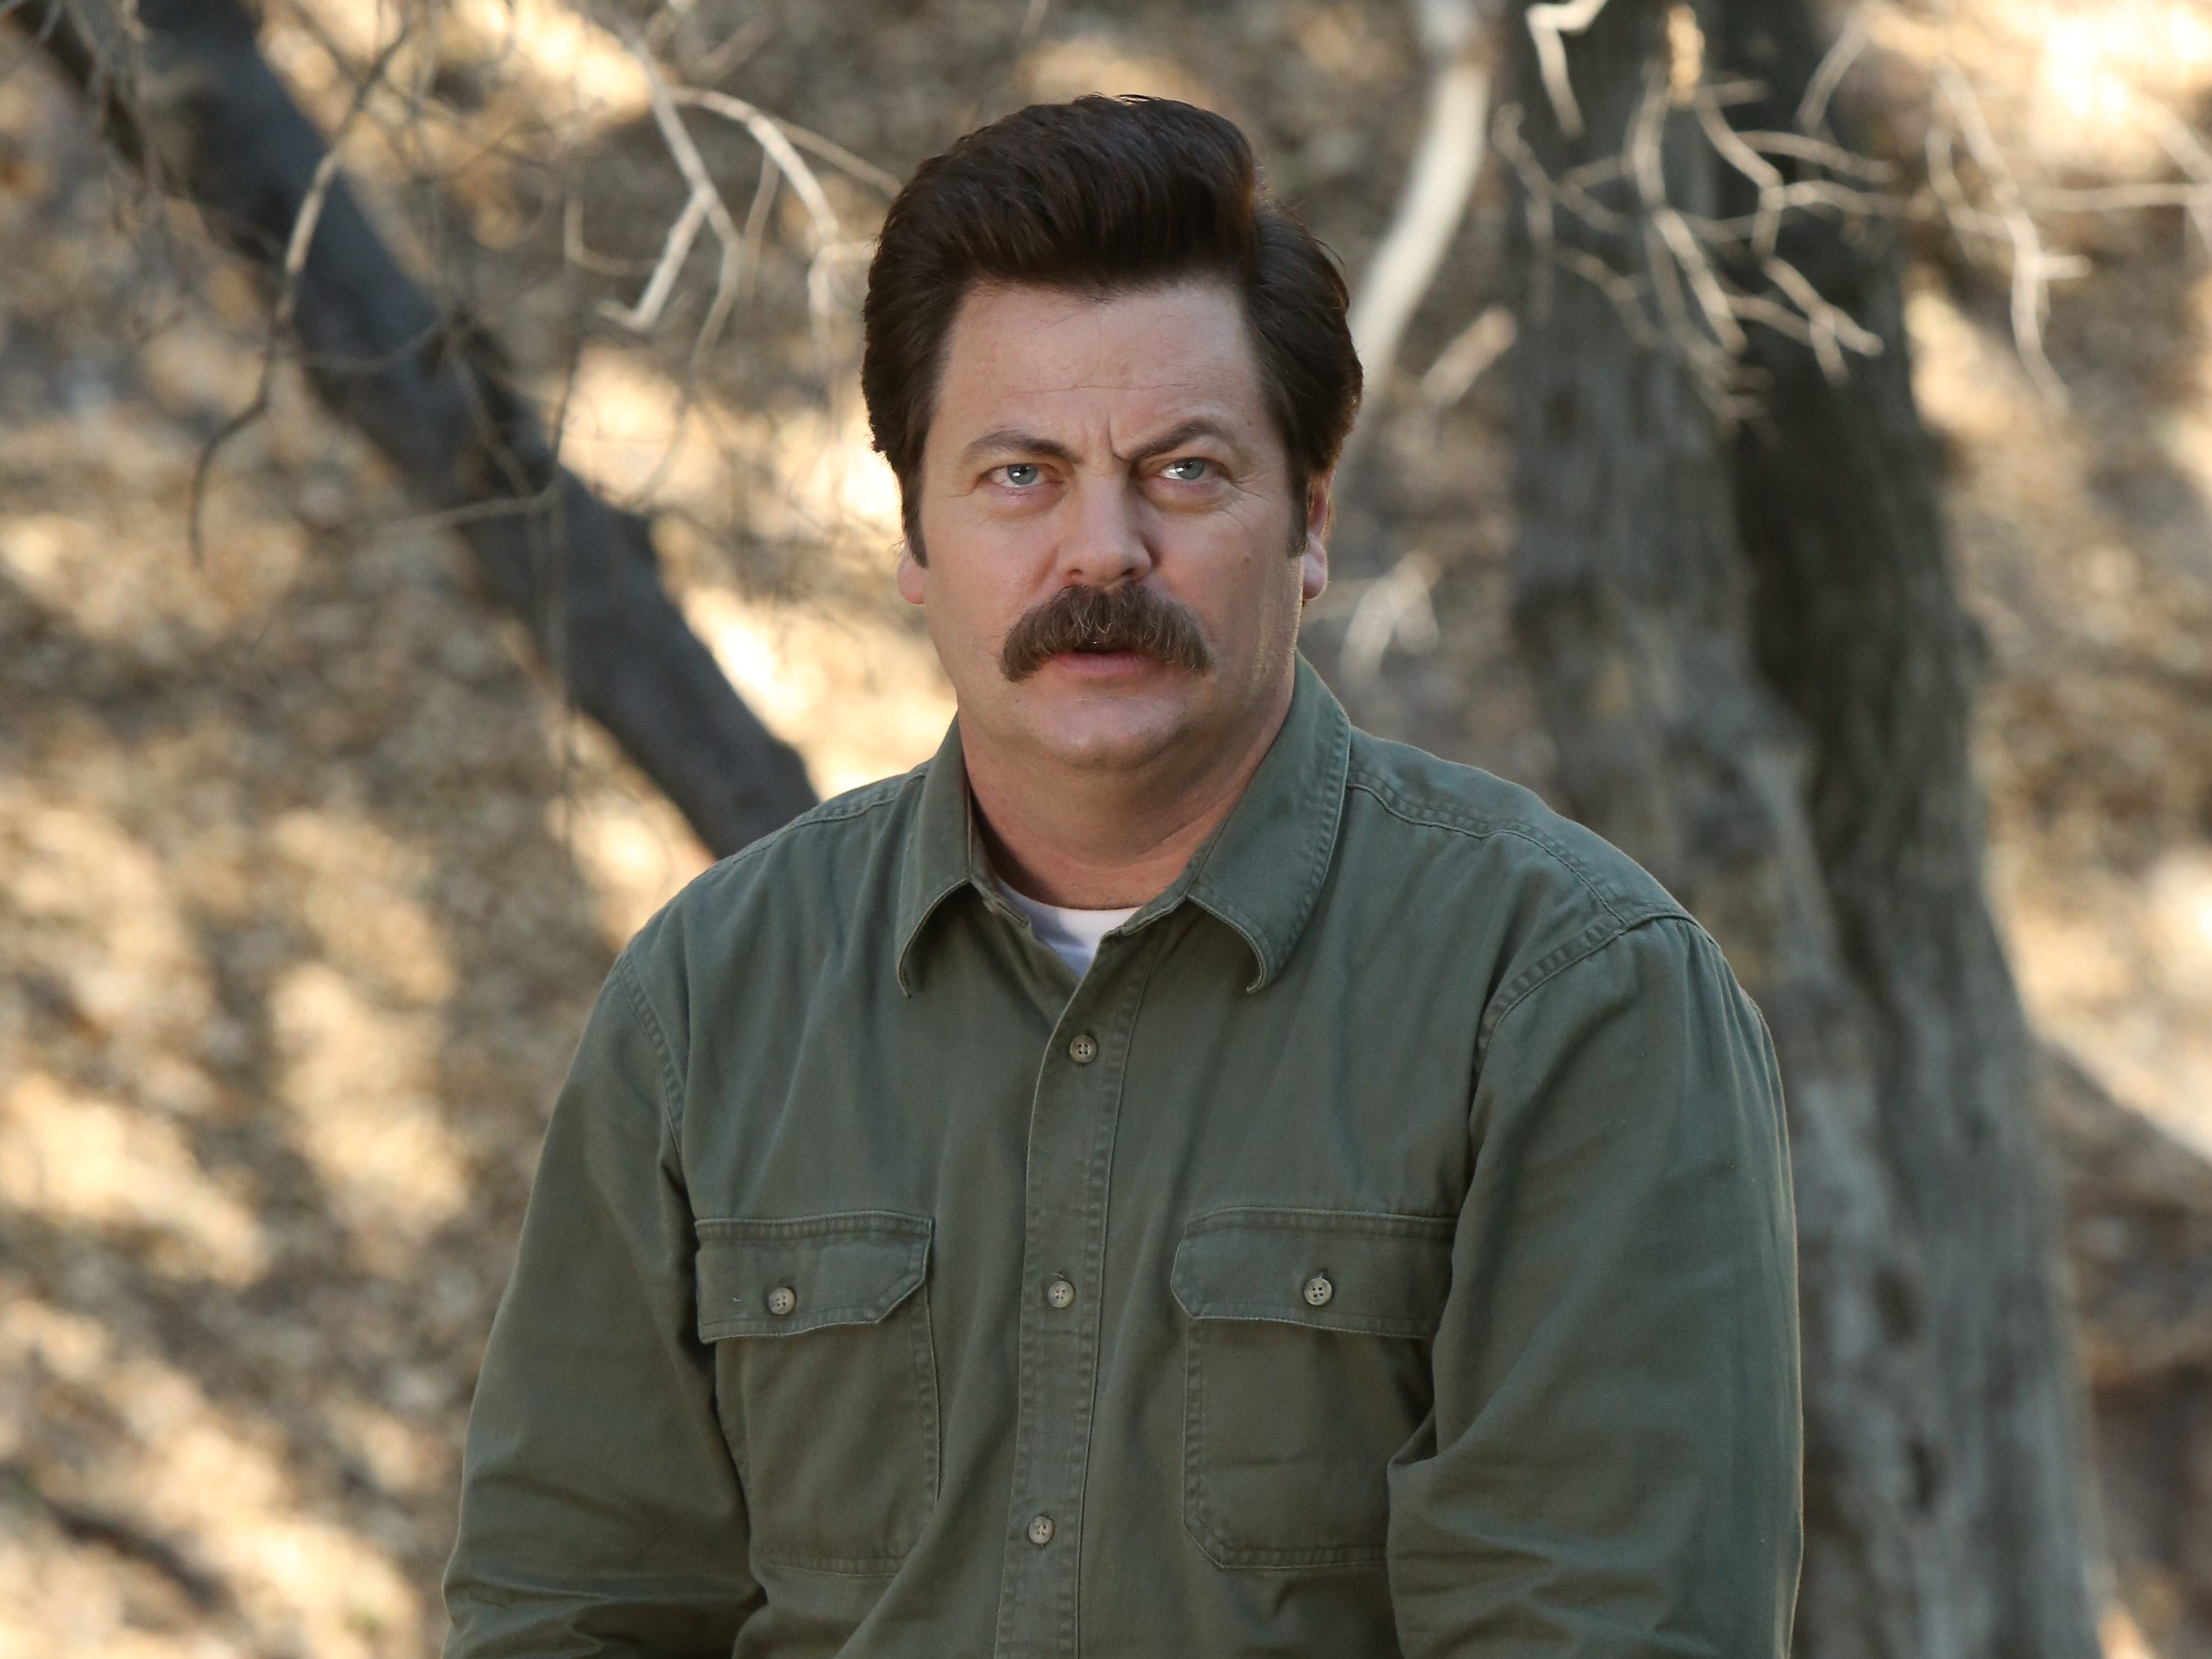 Nick Offerman played Ron Swanson, the cantankerous director of Pawnee's parks and rec department.